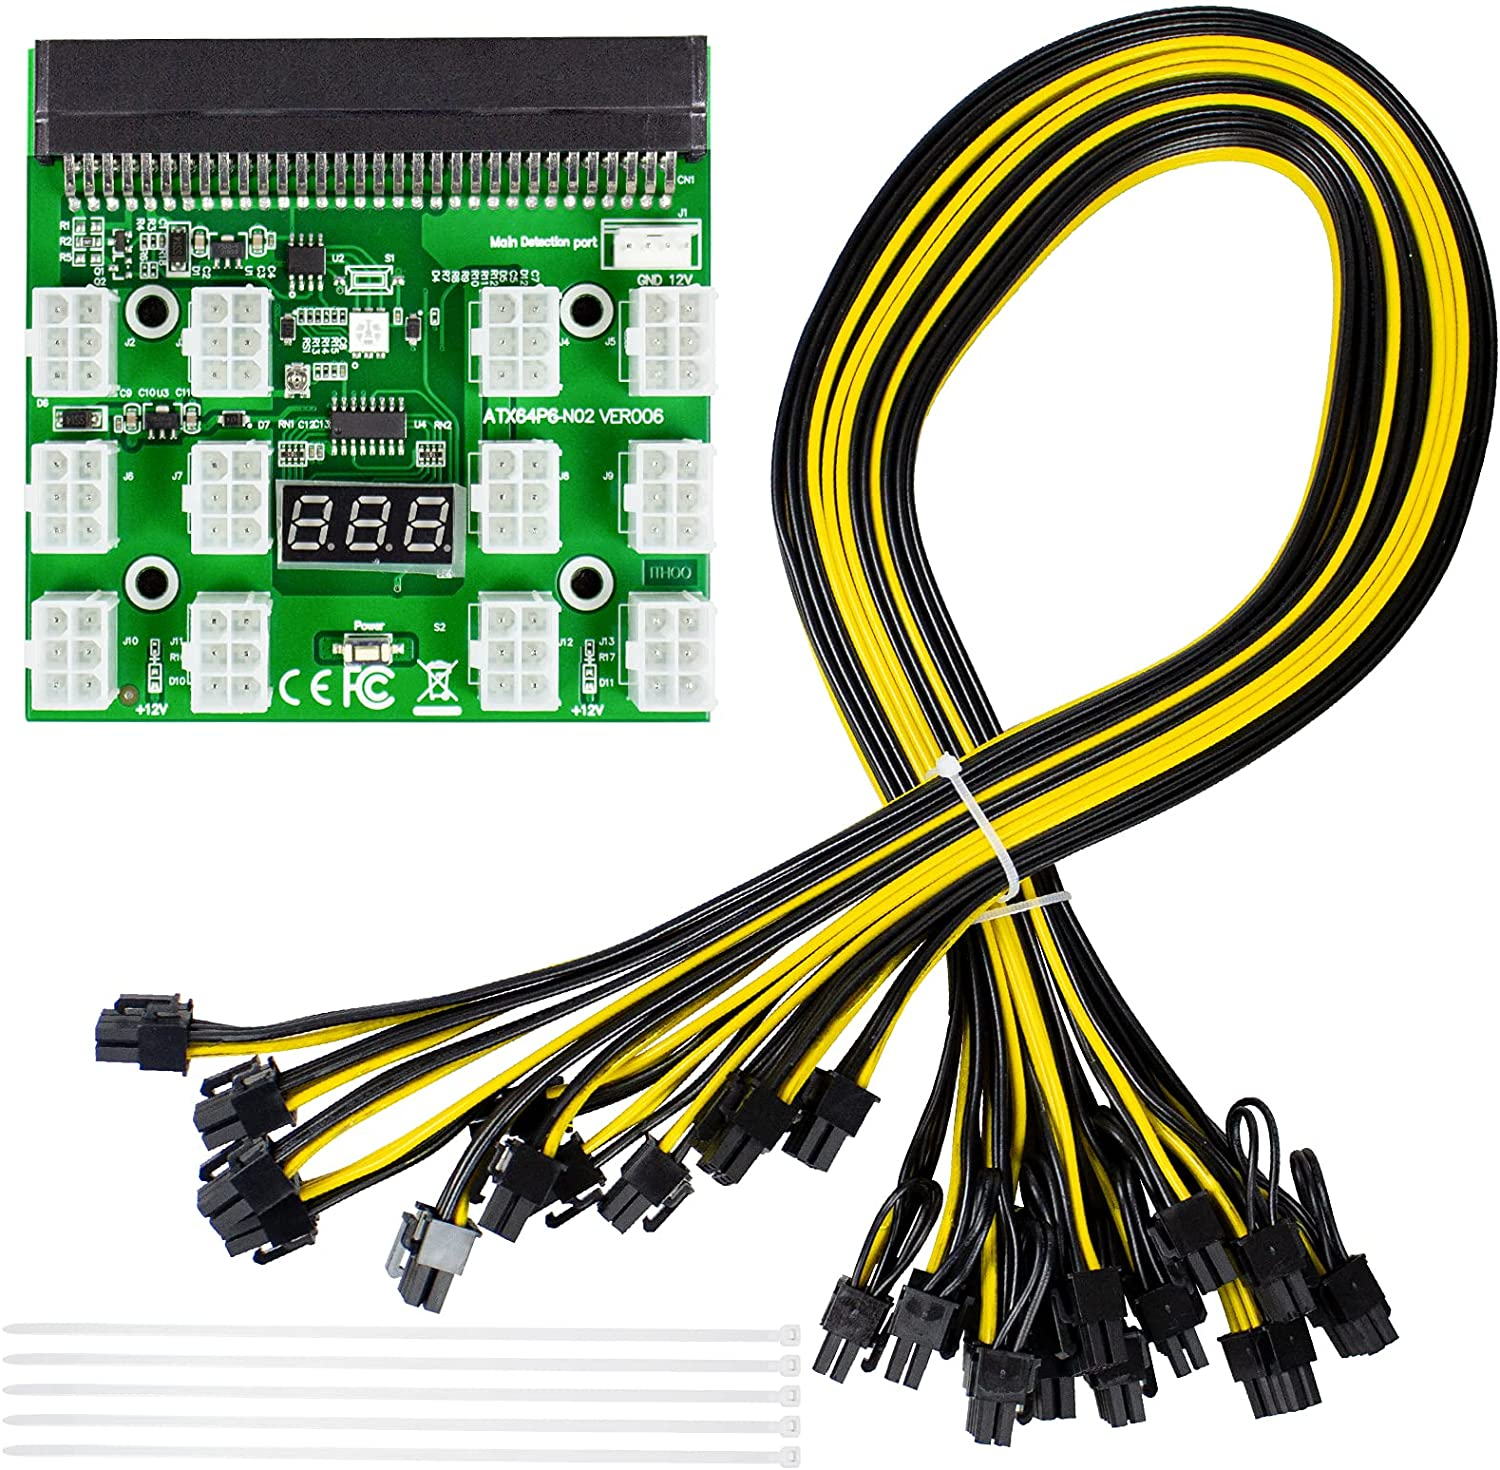 LXun Ethereum Mining ETH ZEC Power Supply 12V GPU/PSU Breakout Board for HP 1200w/750w Server PSU + 12pcs 16AWG PCI-E 6Pin to 6+2Pin Cables 27.5Inch Length(70CM, with 5 Nylon Cable Ties)